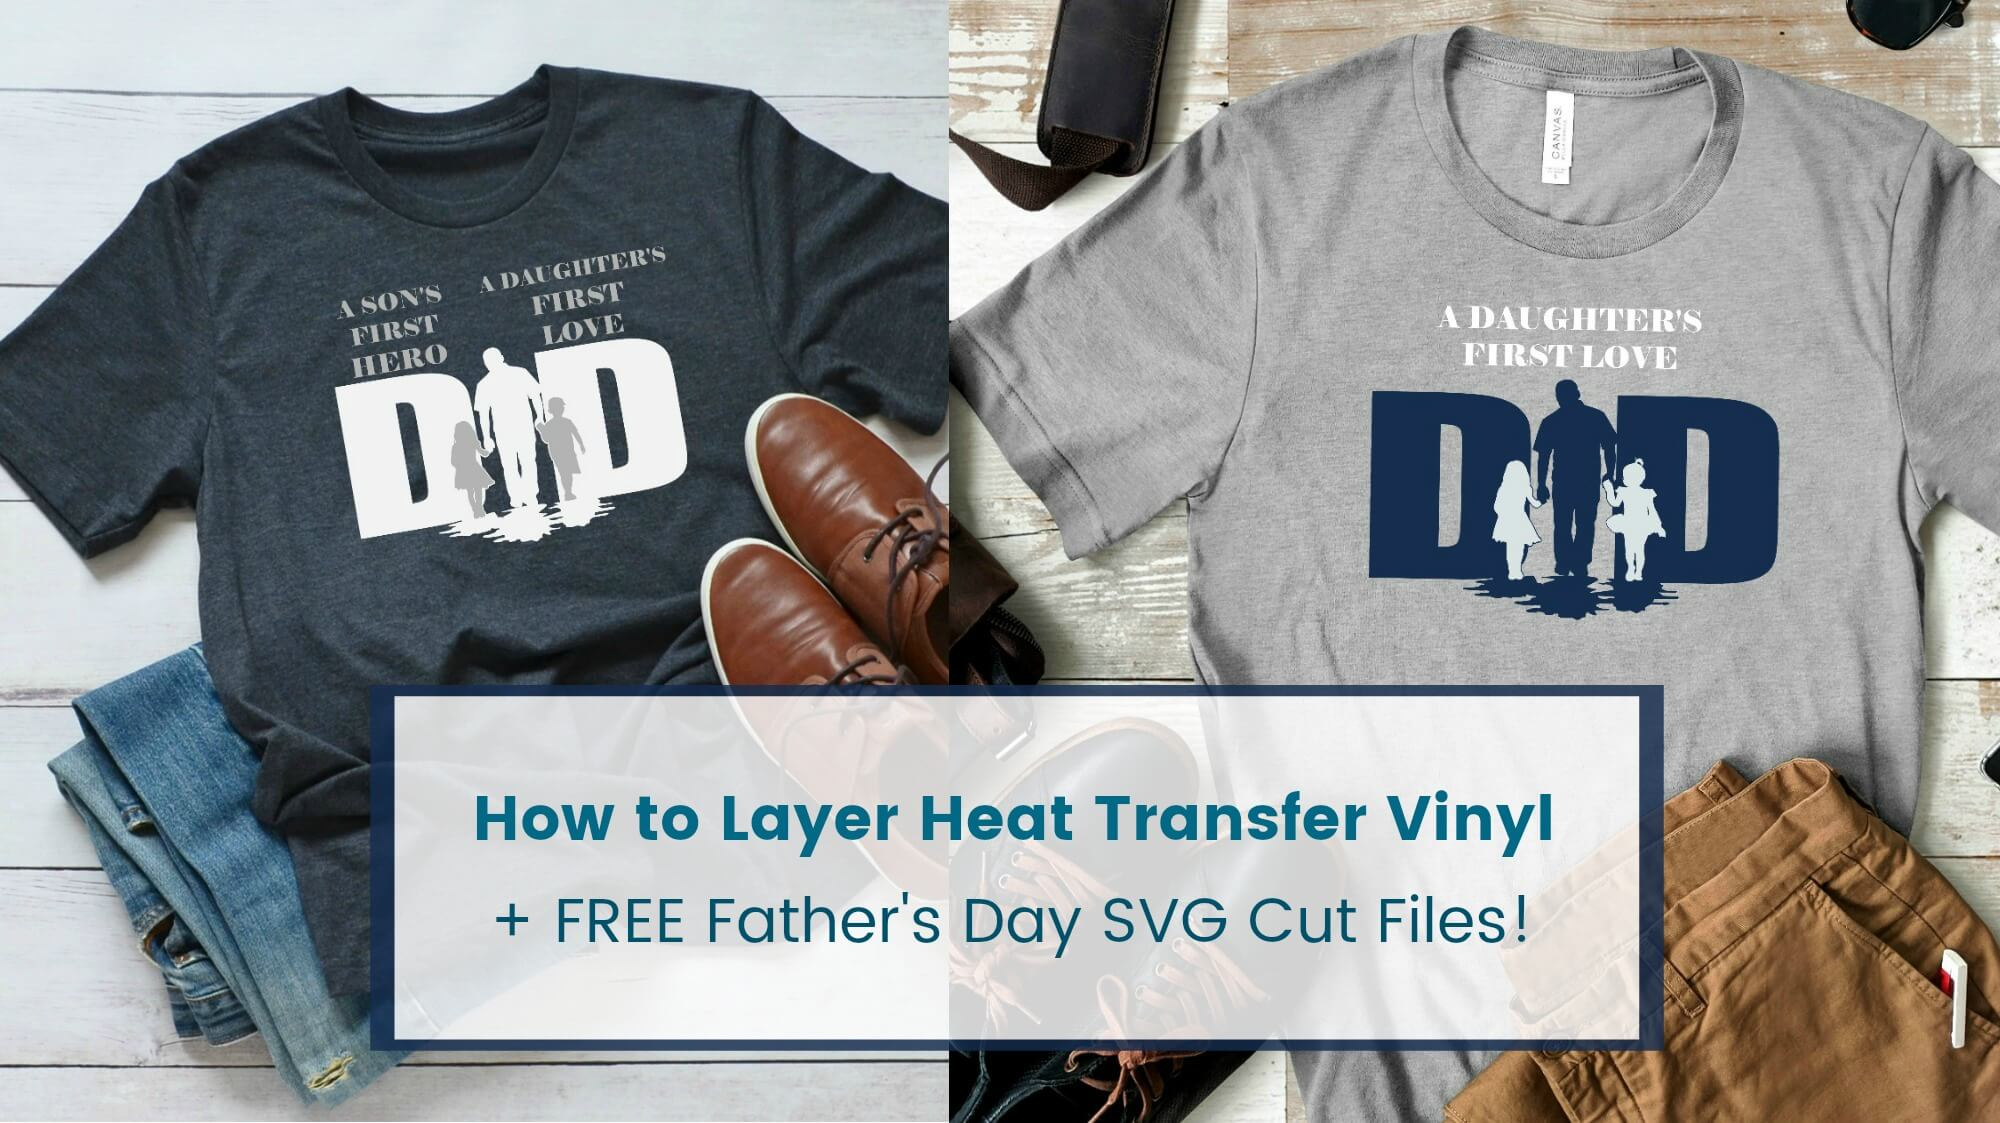 How to Layer Heat Transfer Vinyl the Easy Way